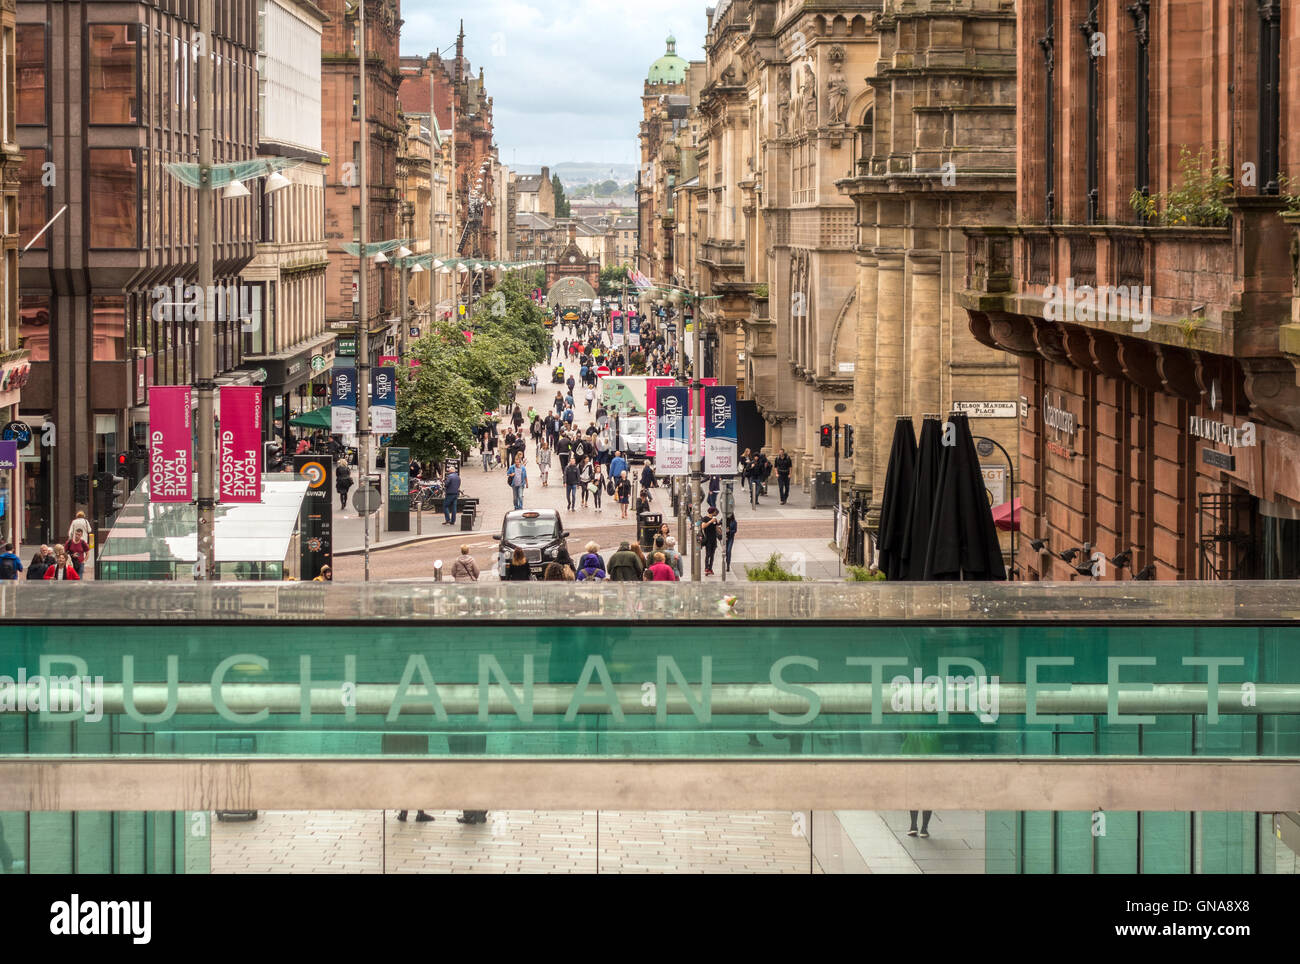 Glasgow Buchanan Street a popular street for shopping. Entrance to the underground station. - Stock Image